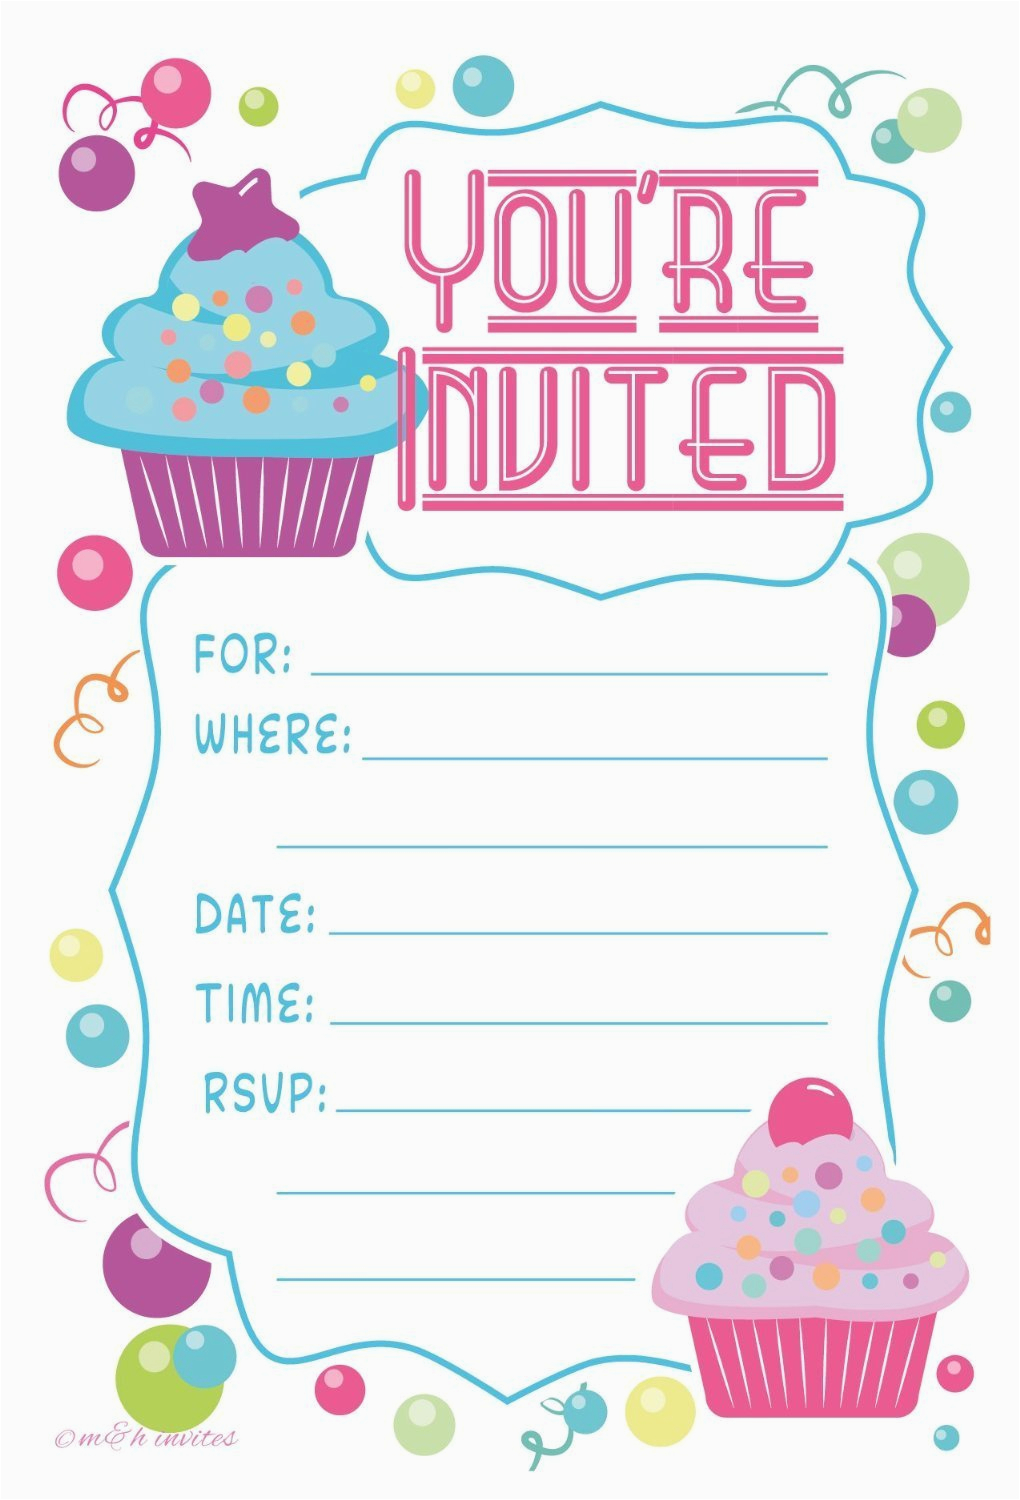 12 Year Old Birthday Party Invitations Birthday Party Invitations